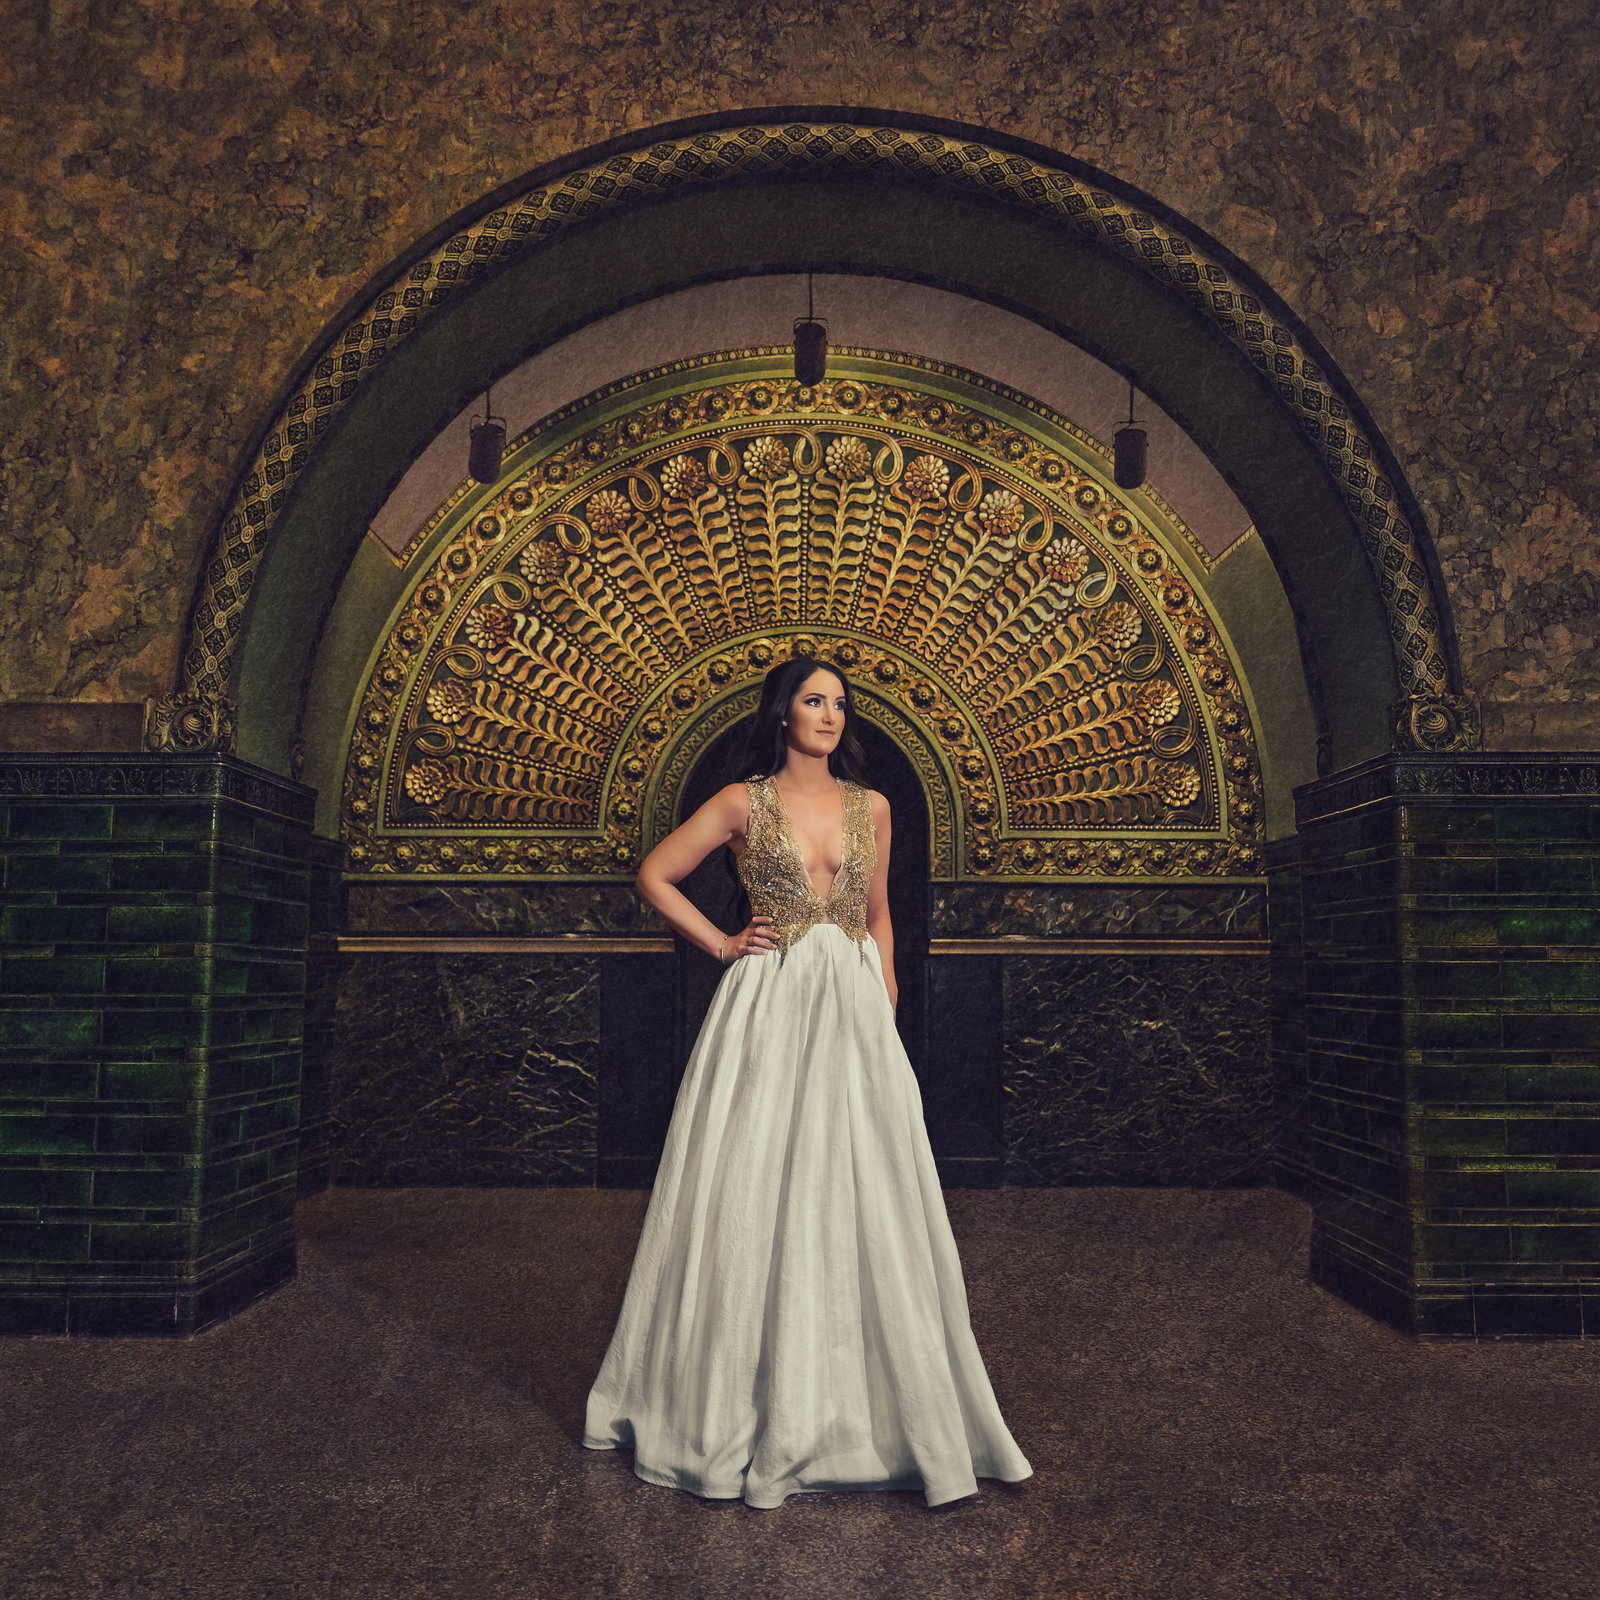 St. Louis Union Station Wedding by Andrew Joseph